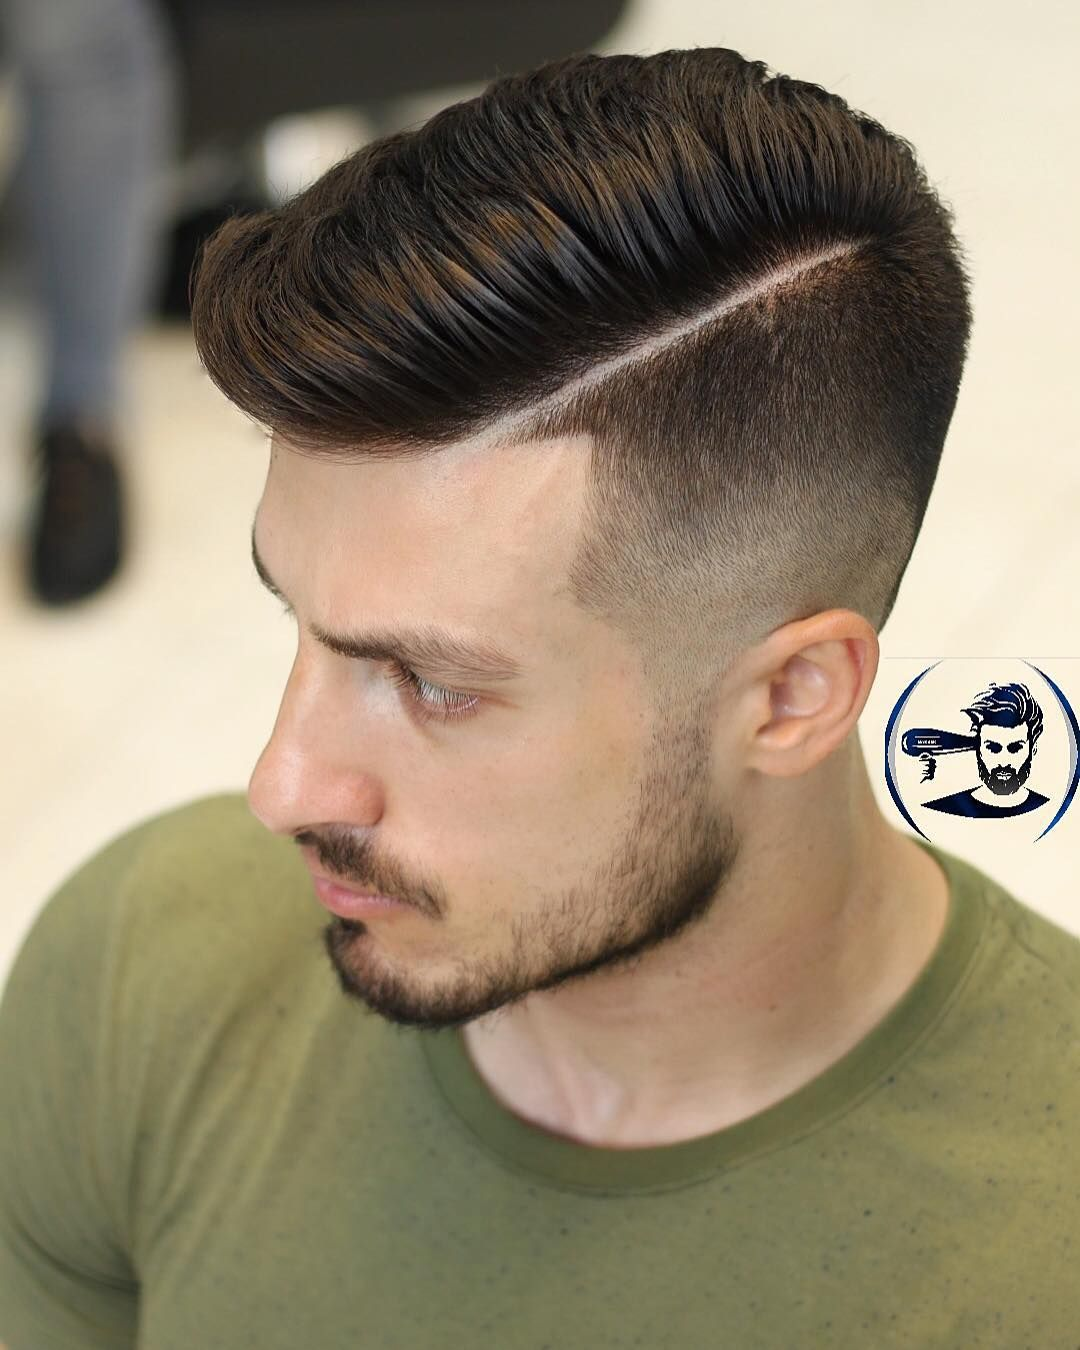 Hair Style Men 169K Likes 206 Comments  Hair Man Styles Hairmanstyles On